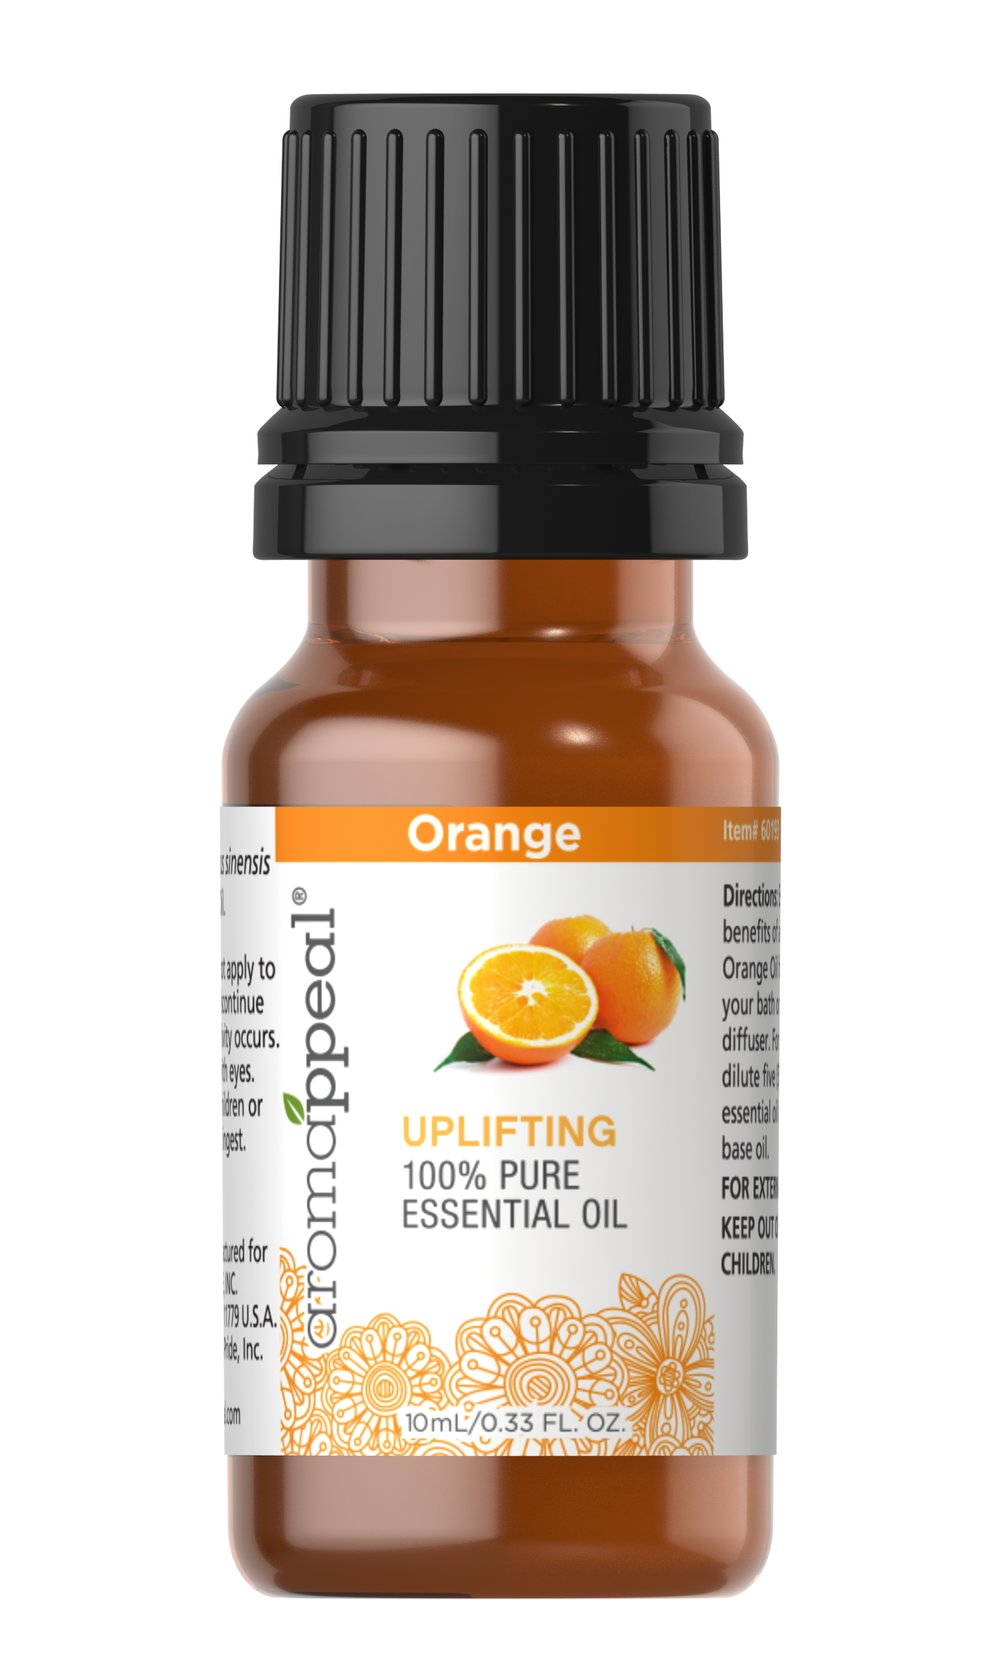 Orange 100% Pure Essential Oil  10 ml Oil  $7.99